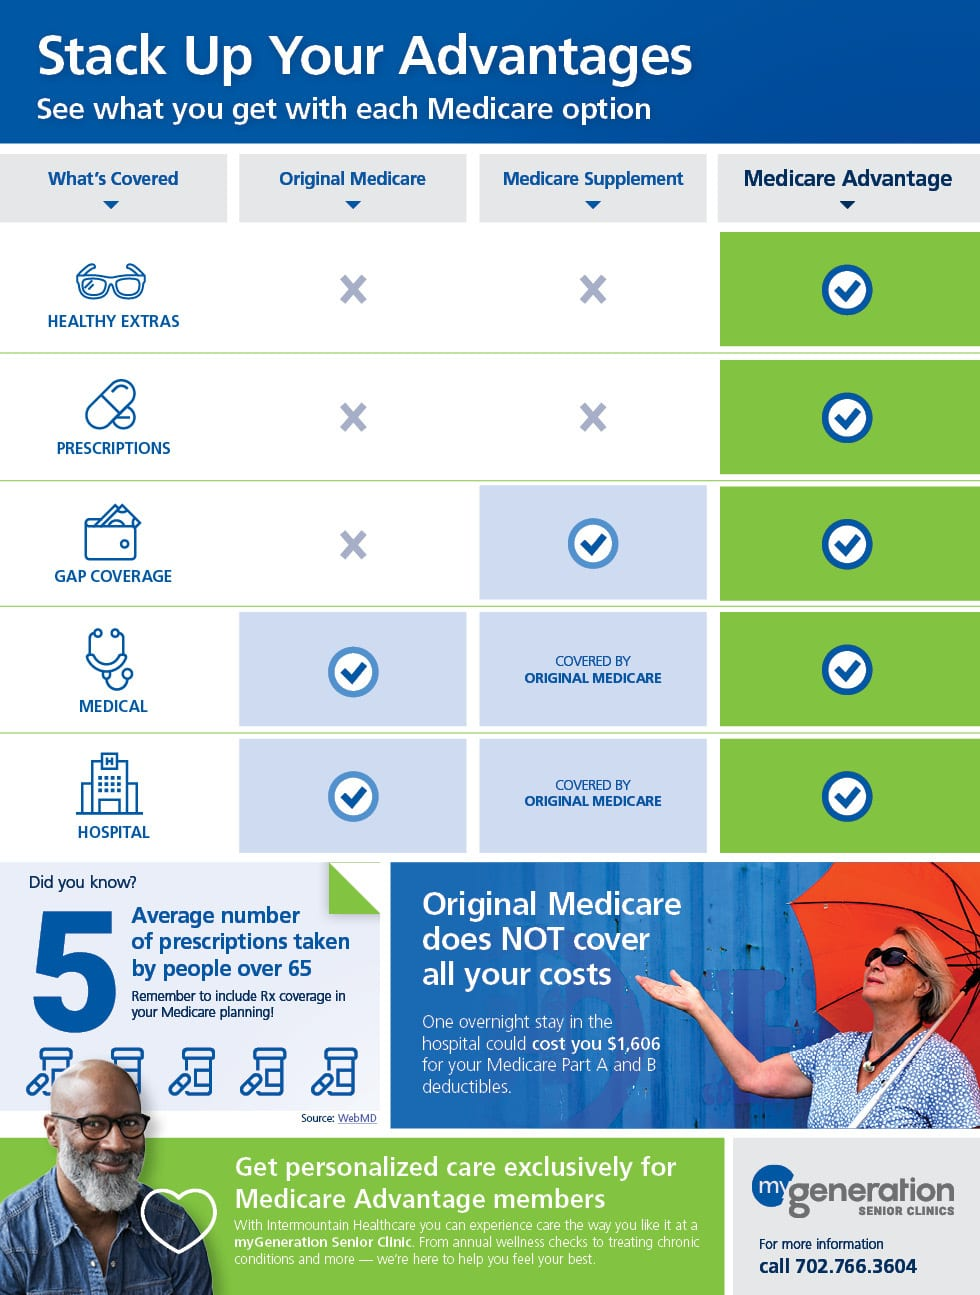 2064_REBRAND_-_Stack_Up_Your_Advantages_Infographic_FIN